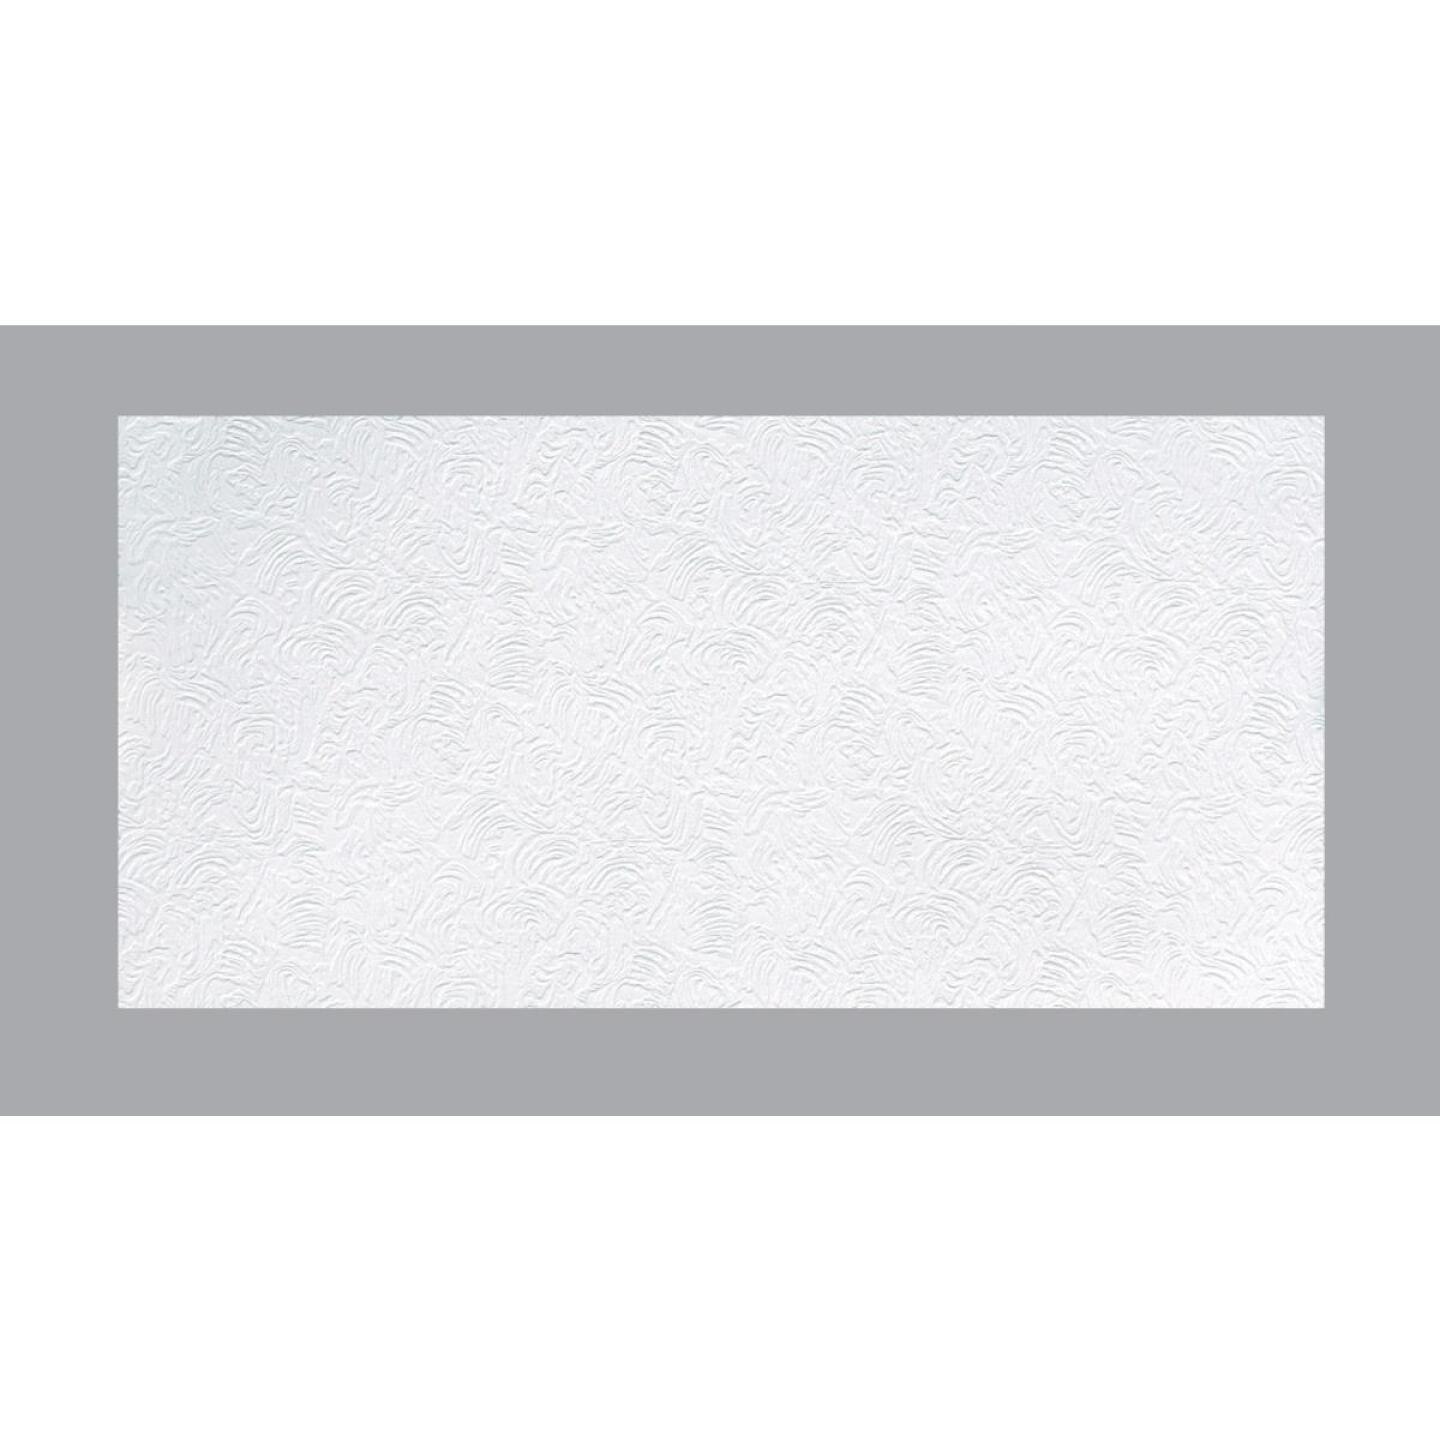 BP LifeStyle Caravelle 2 Ft. x 4 Ft. White Wood Fiber Suspended Ceiling Tile (8-Count) Image 1